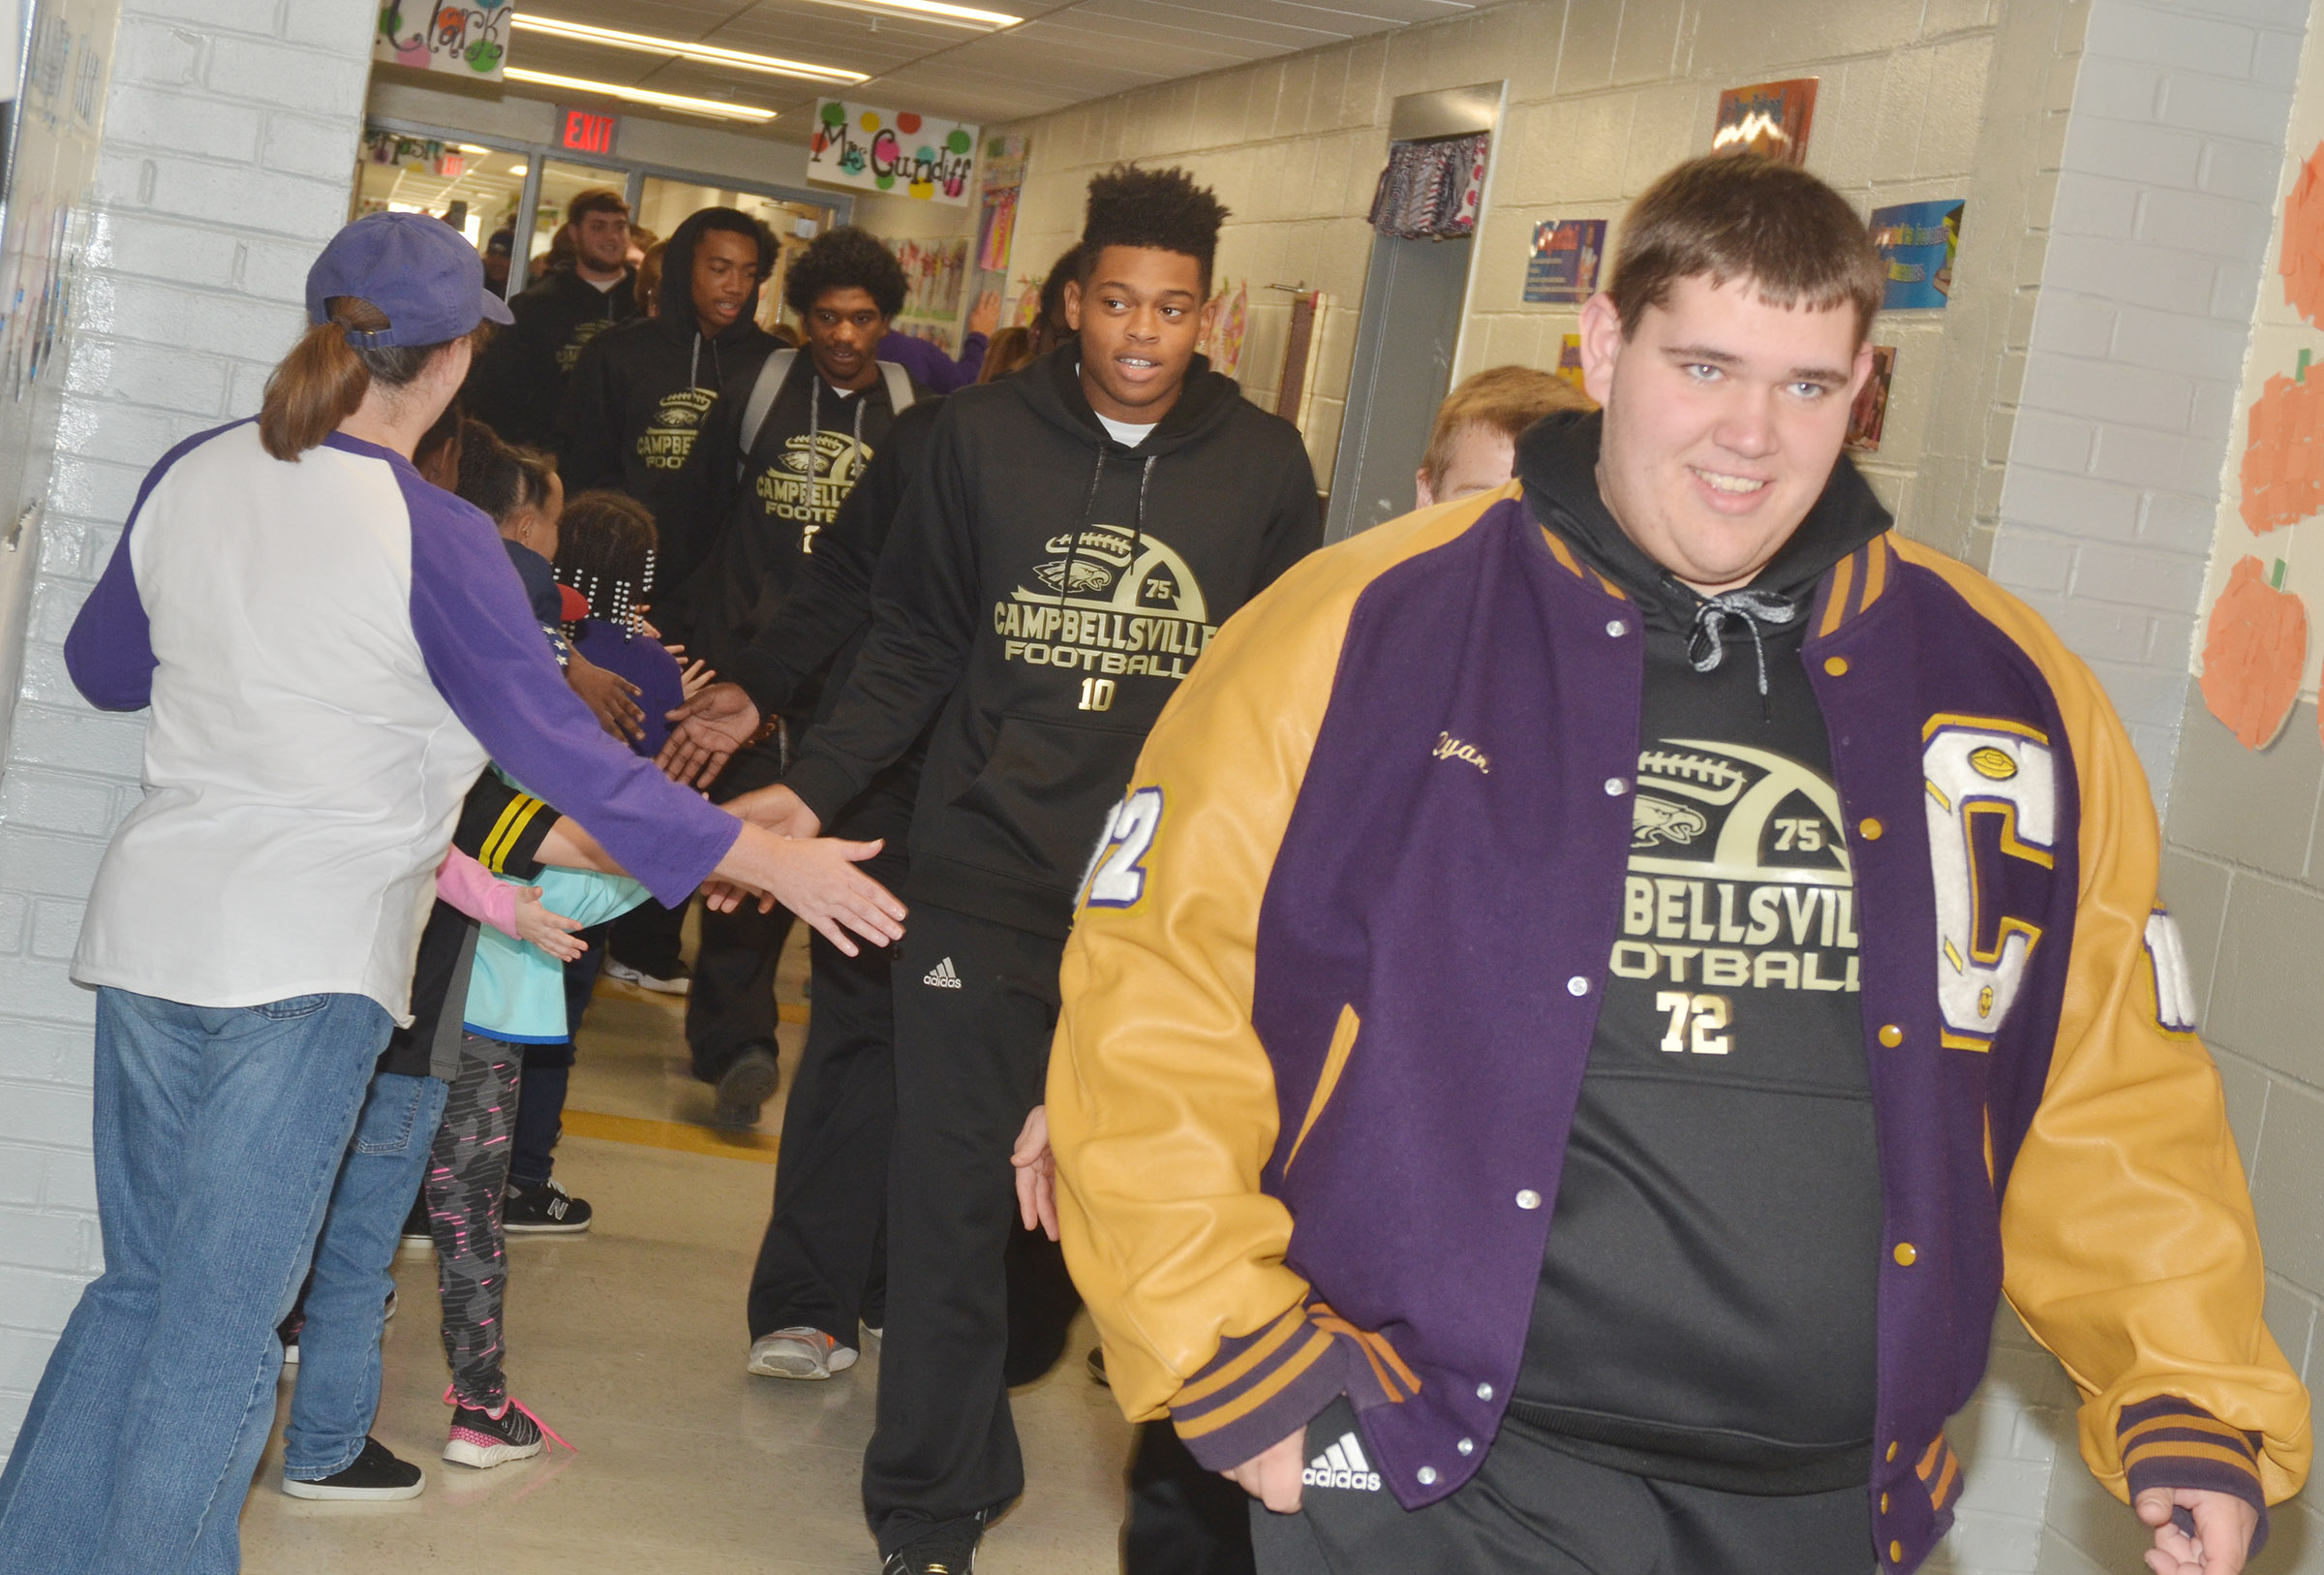 CHS senior Ryan Wiedewitsch leads his teammates down the CES hallway.